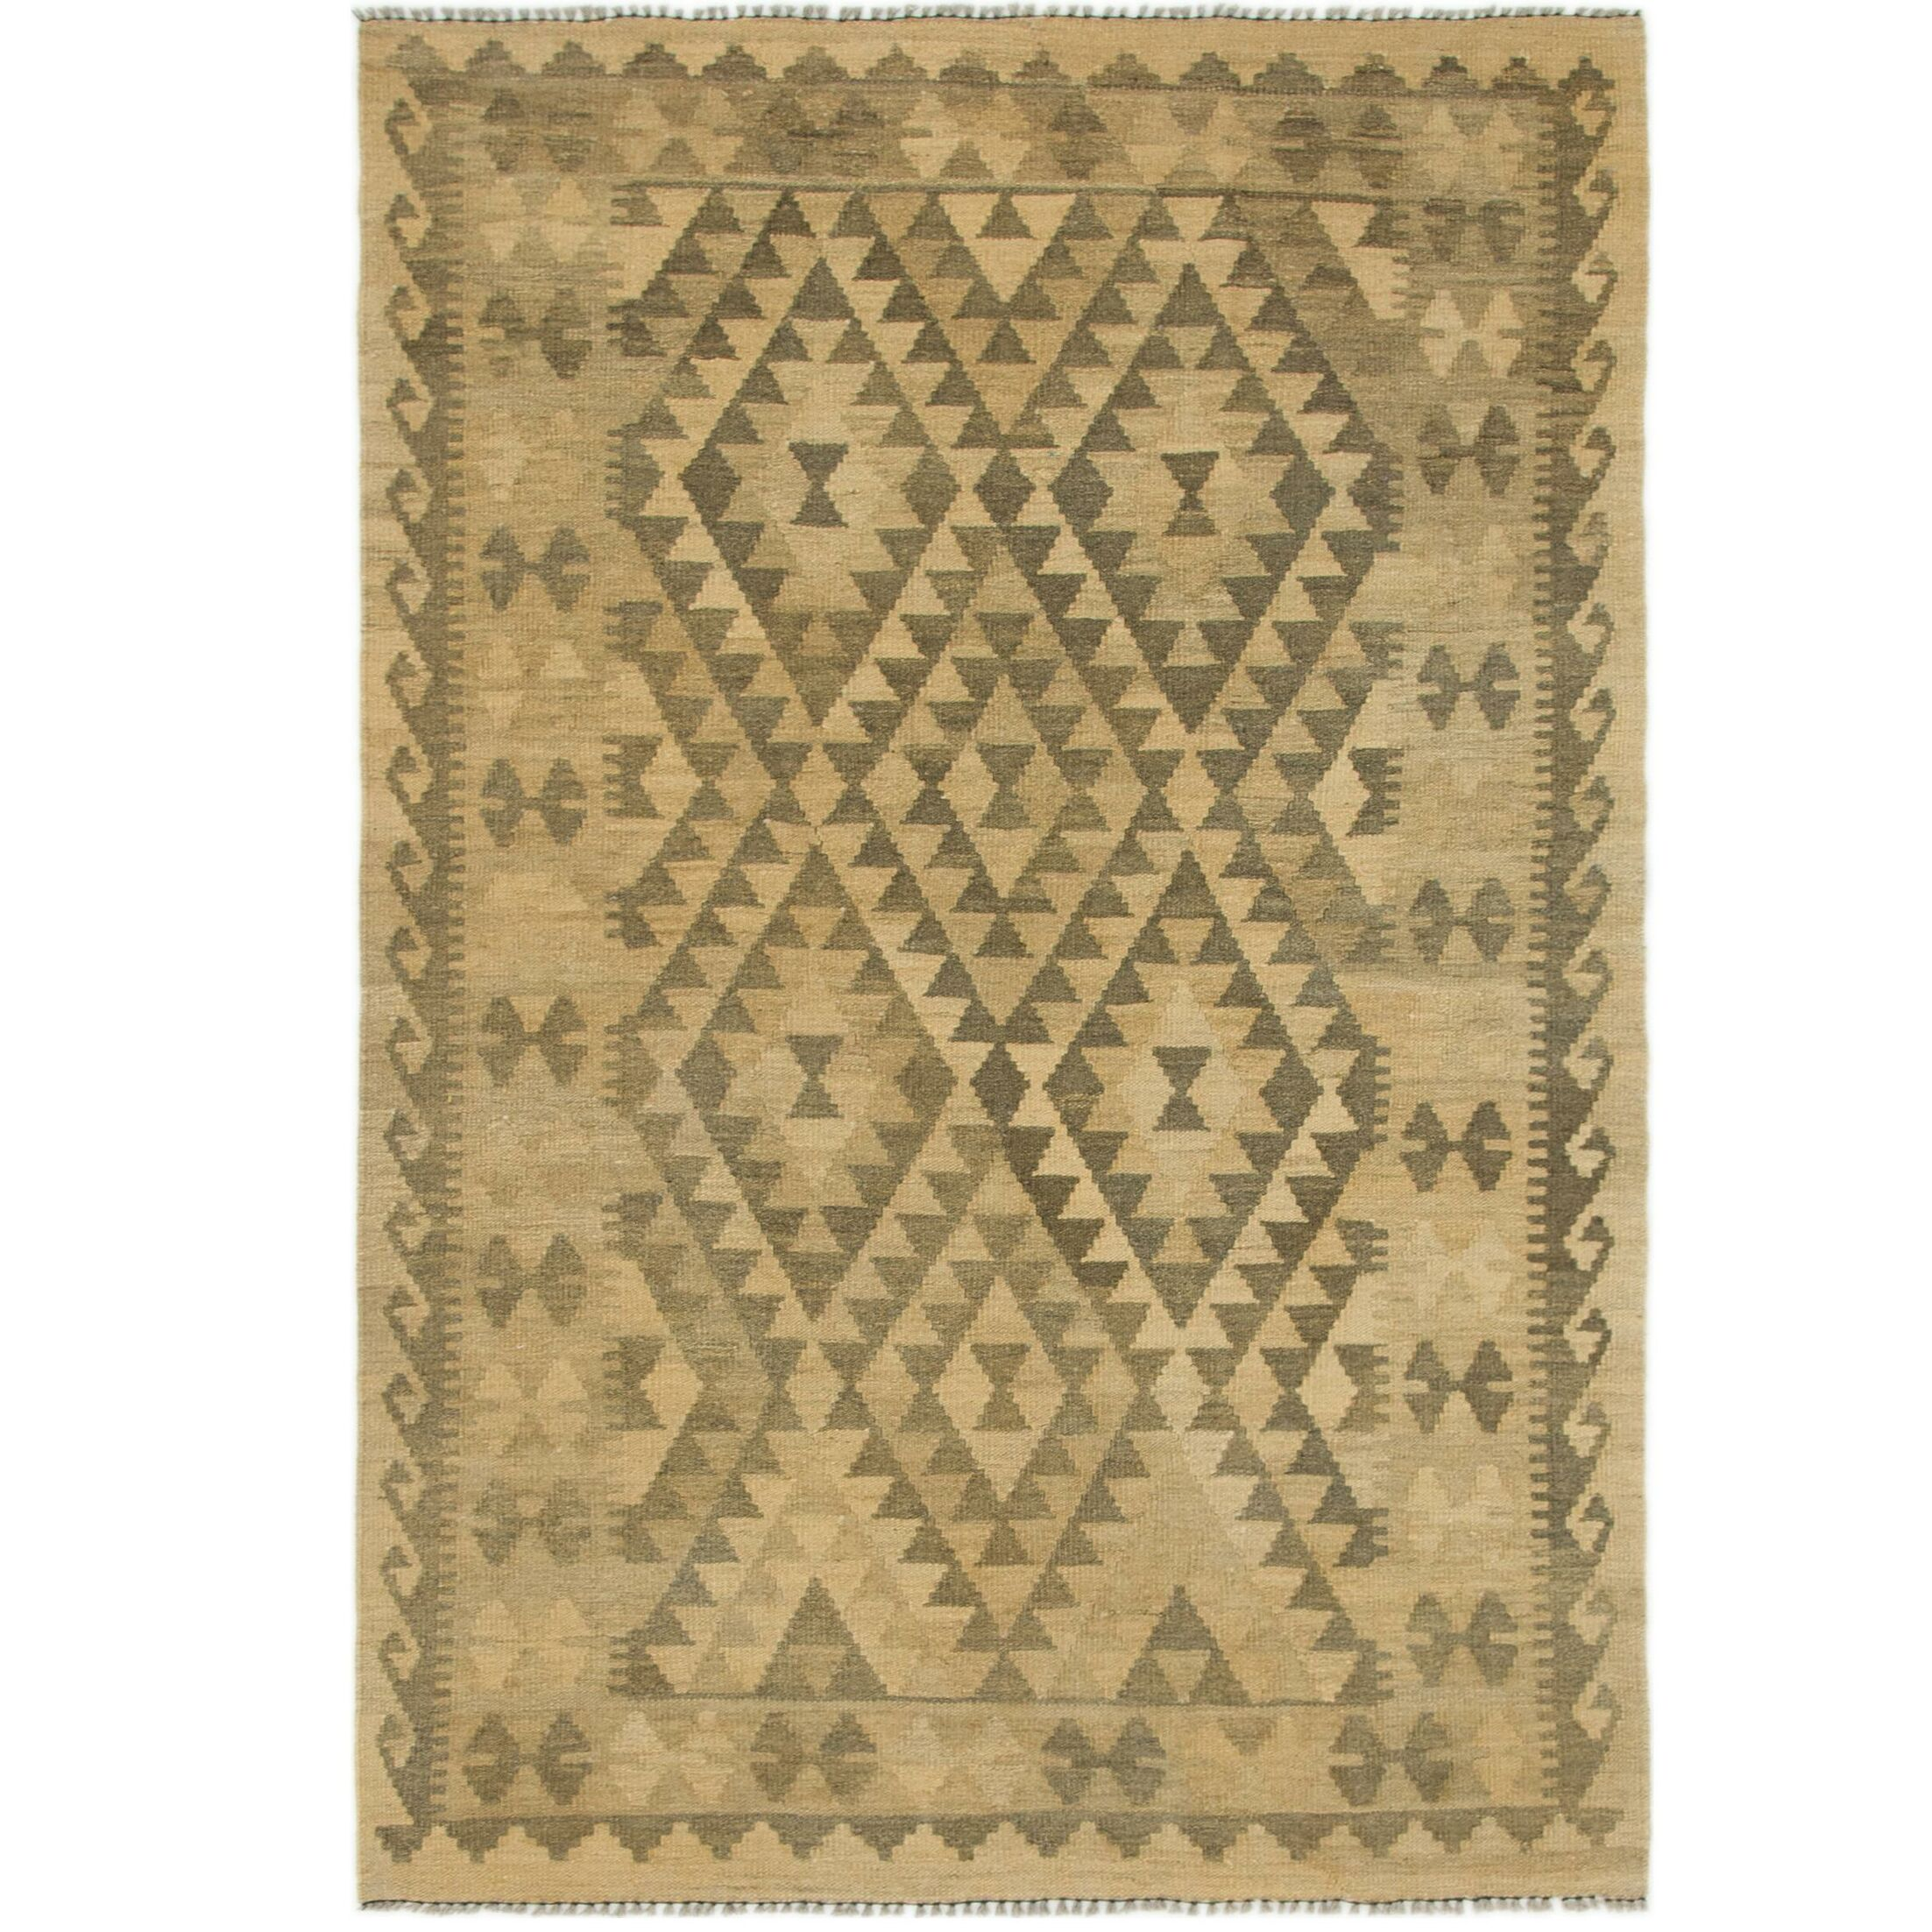 One-of-a-Kind Lorain Hand-Knotted Wool 4' x 6' Beige/Brown Area Rug